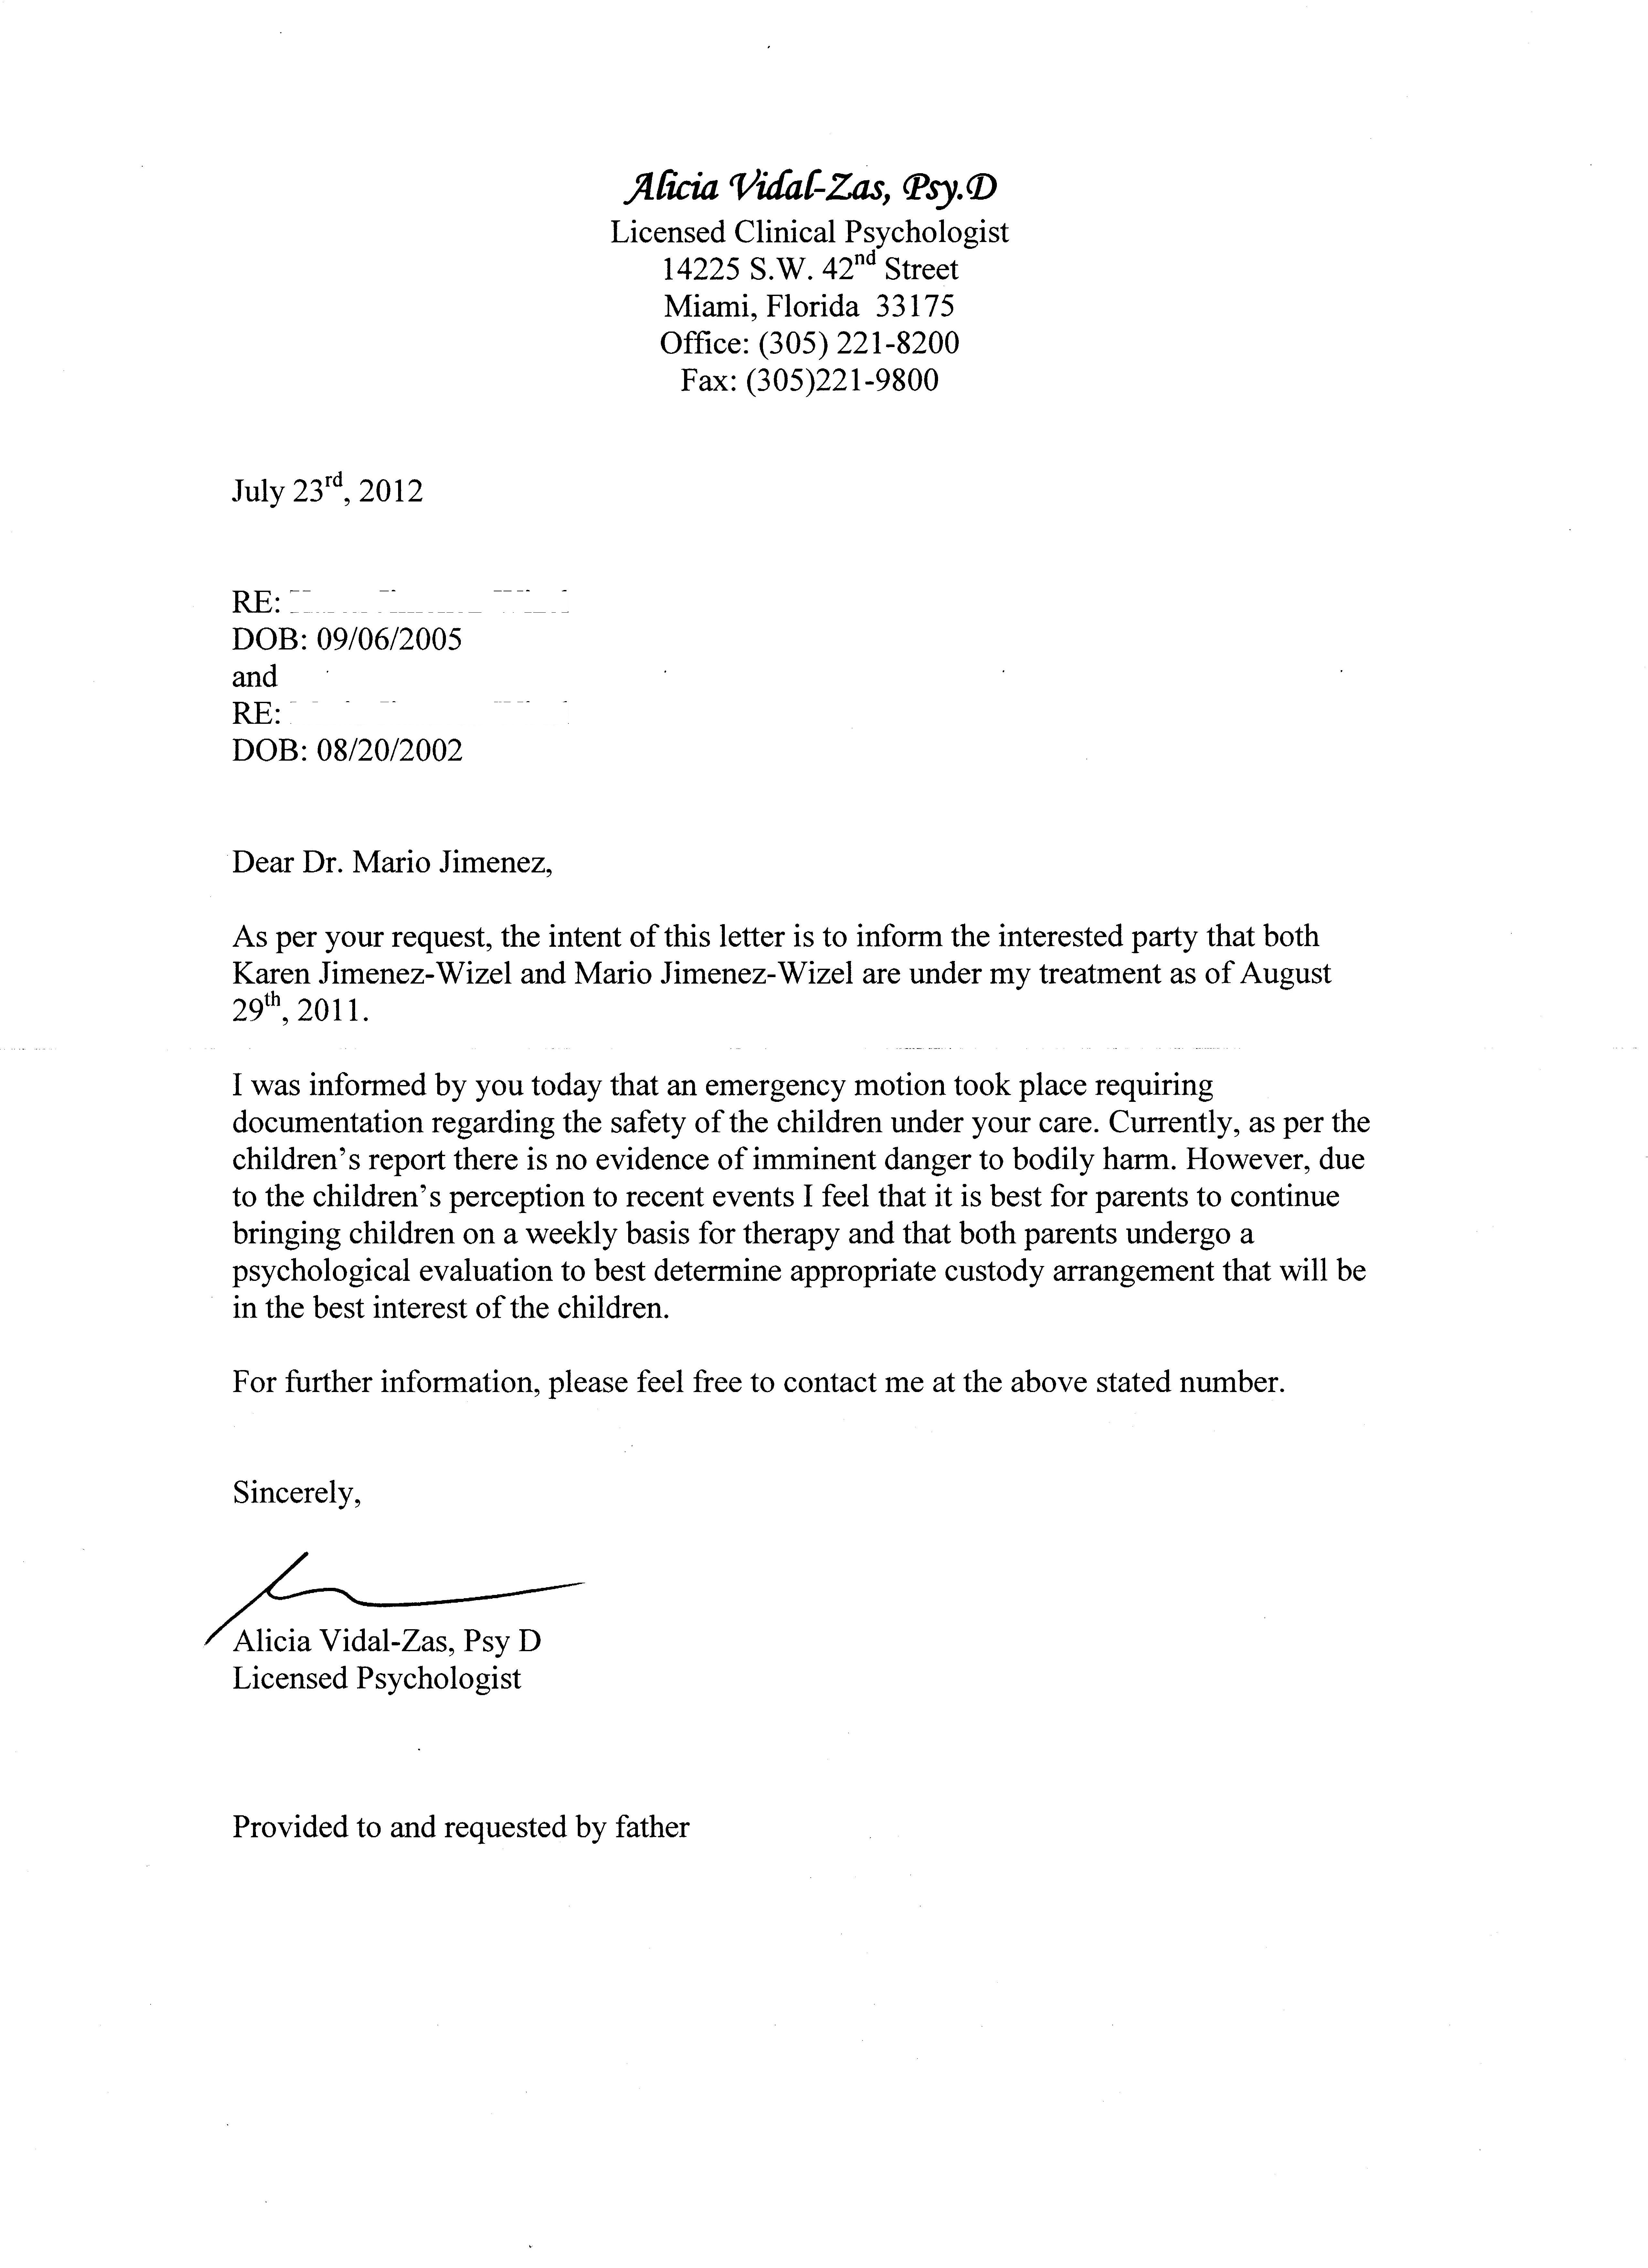 Sample Request Letter To Psychologist